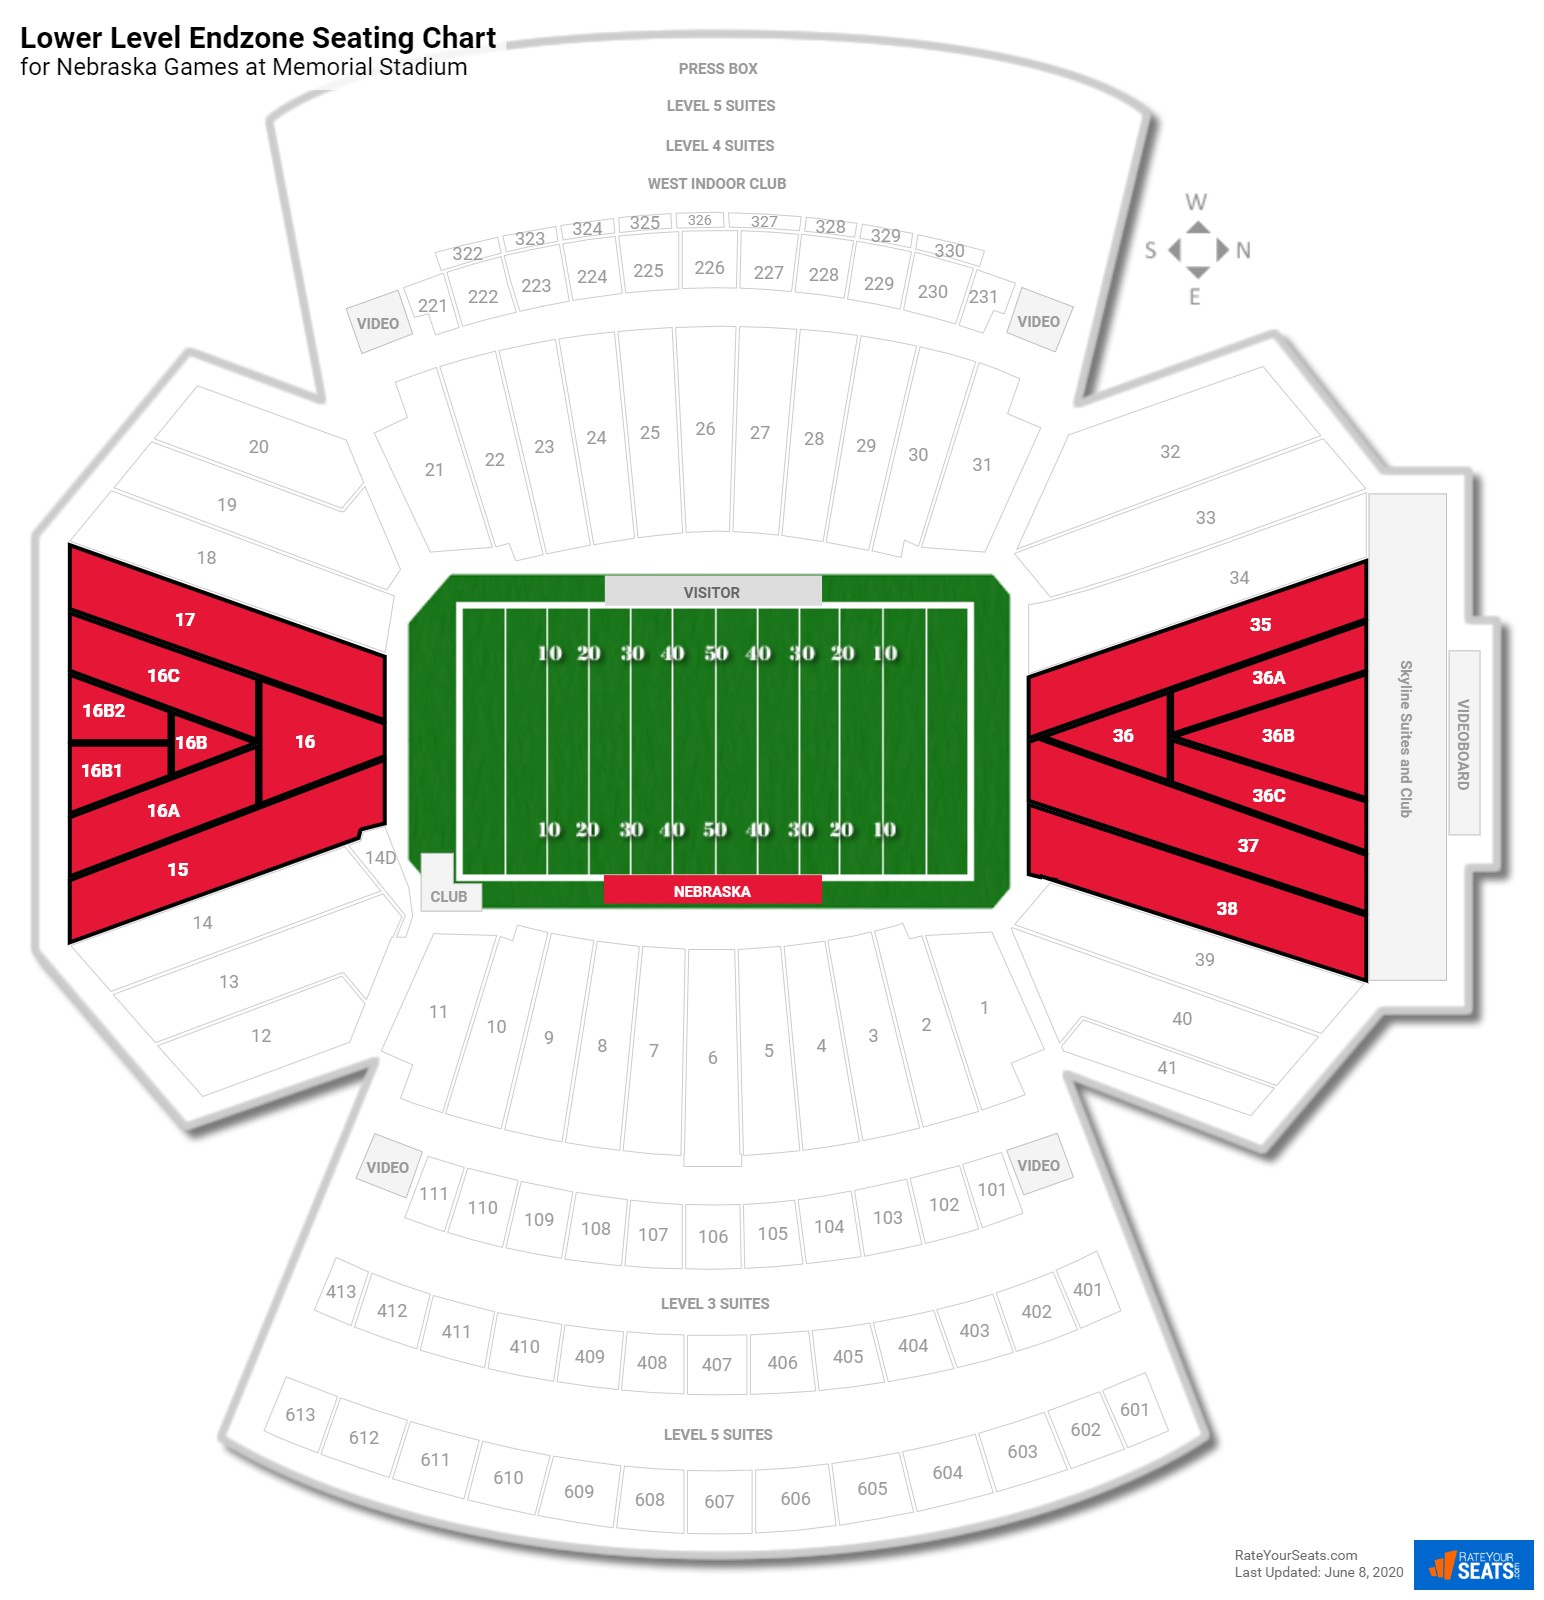 Memorial Stadium Lower Level Endzone seating chart